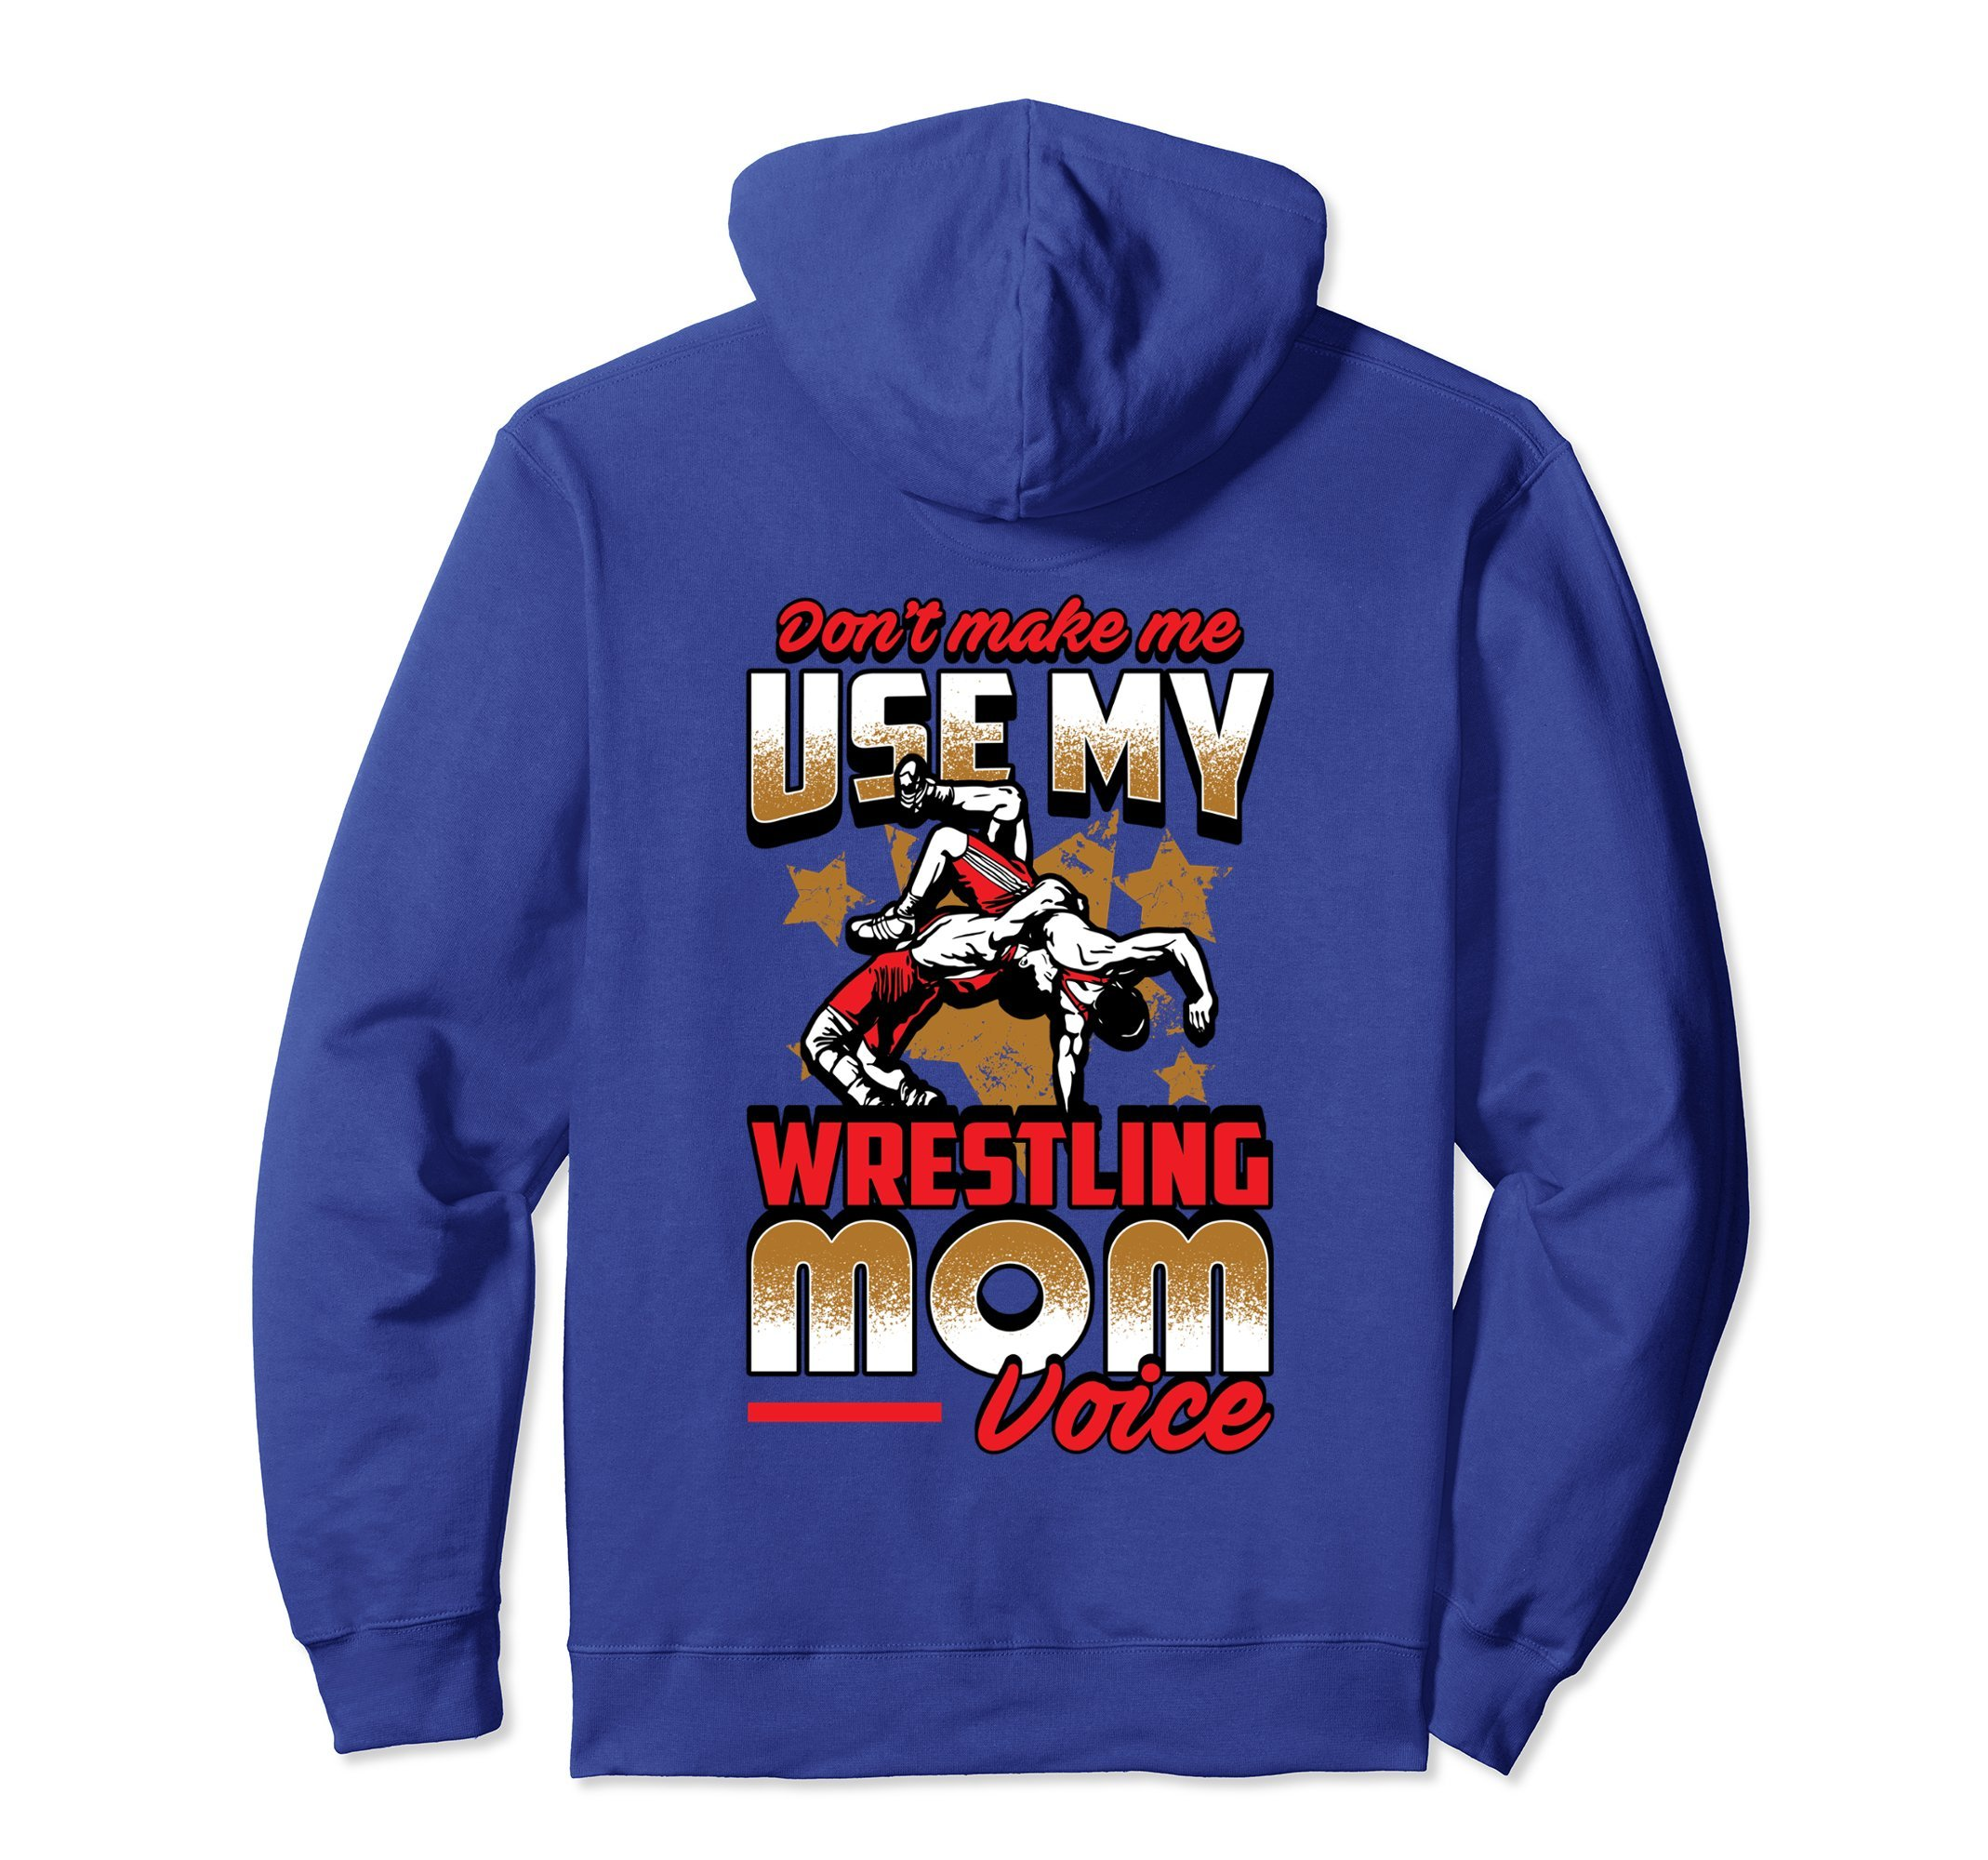 Unisex Wrestling Hoodie - Wrestling Mom Voice Sweatshirt Large Royal Blue by Wrestling Shirt by Crush Retro